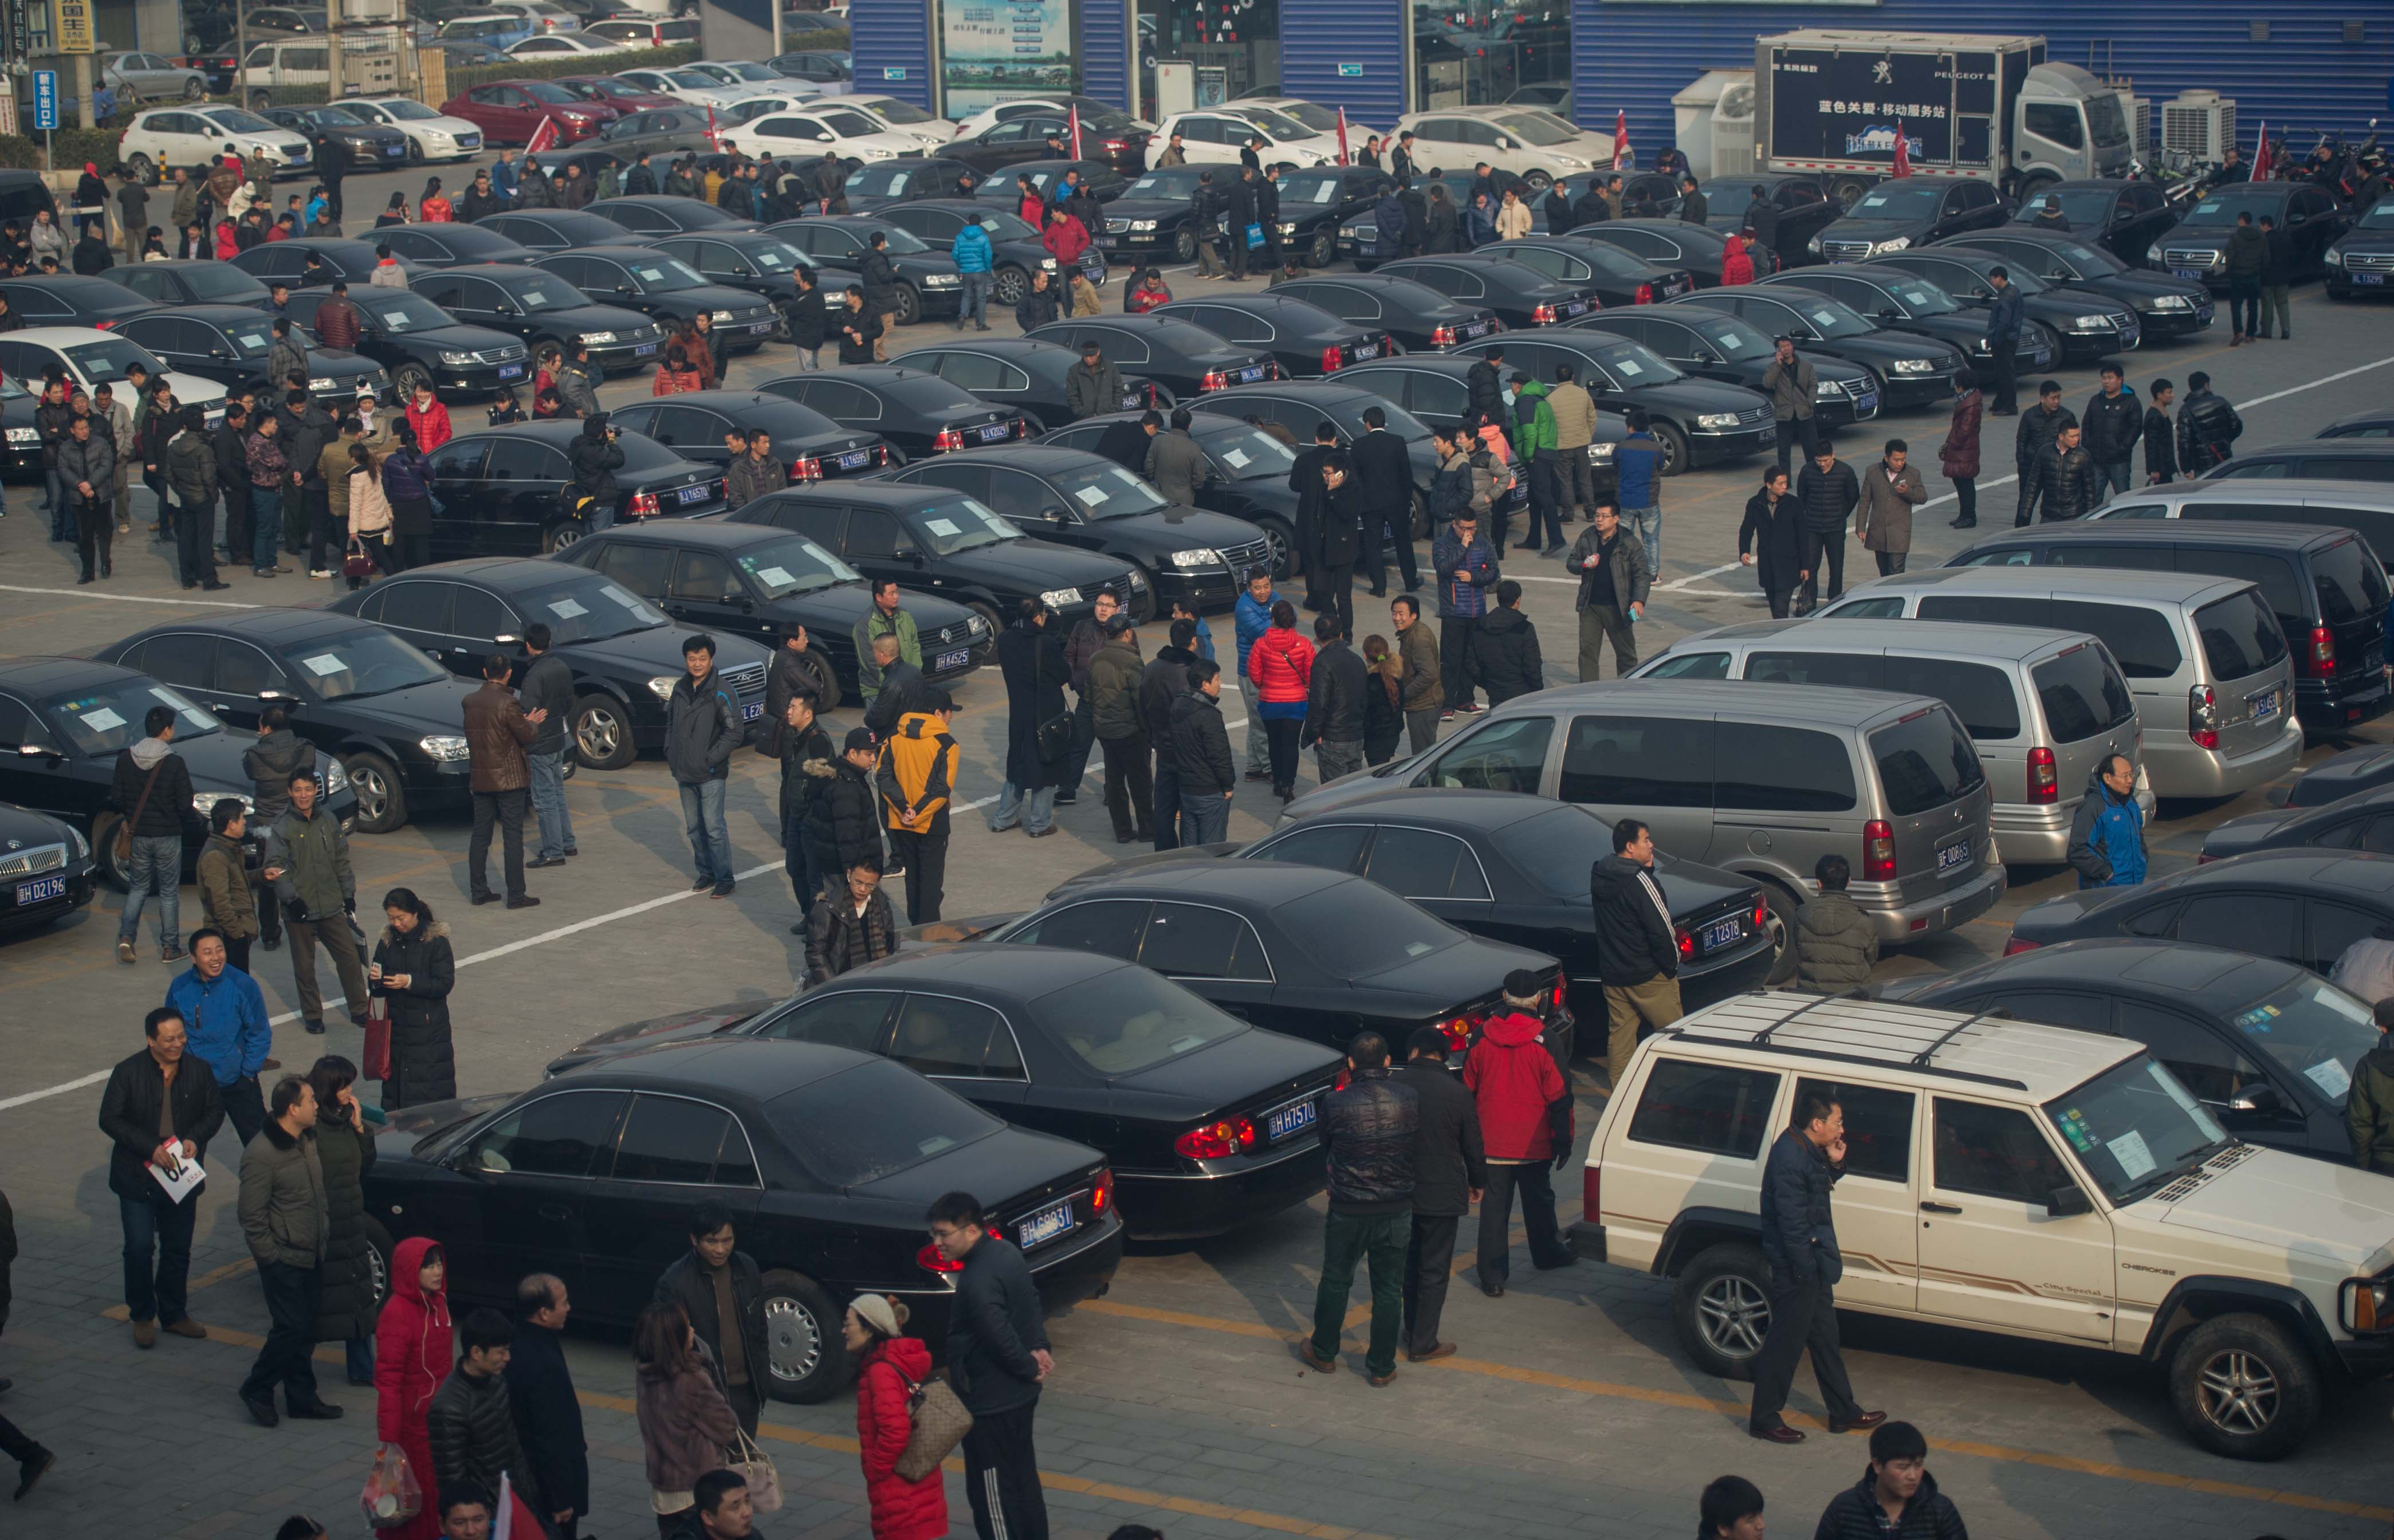 China's first impounded gov't vehicle auction fetches 1 mln USD